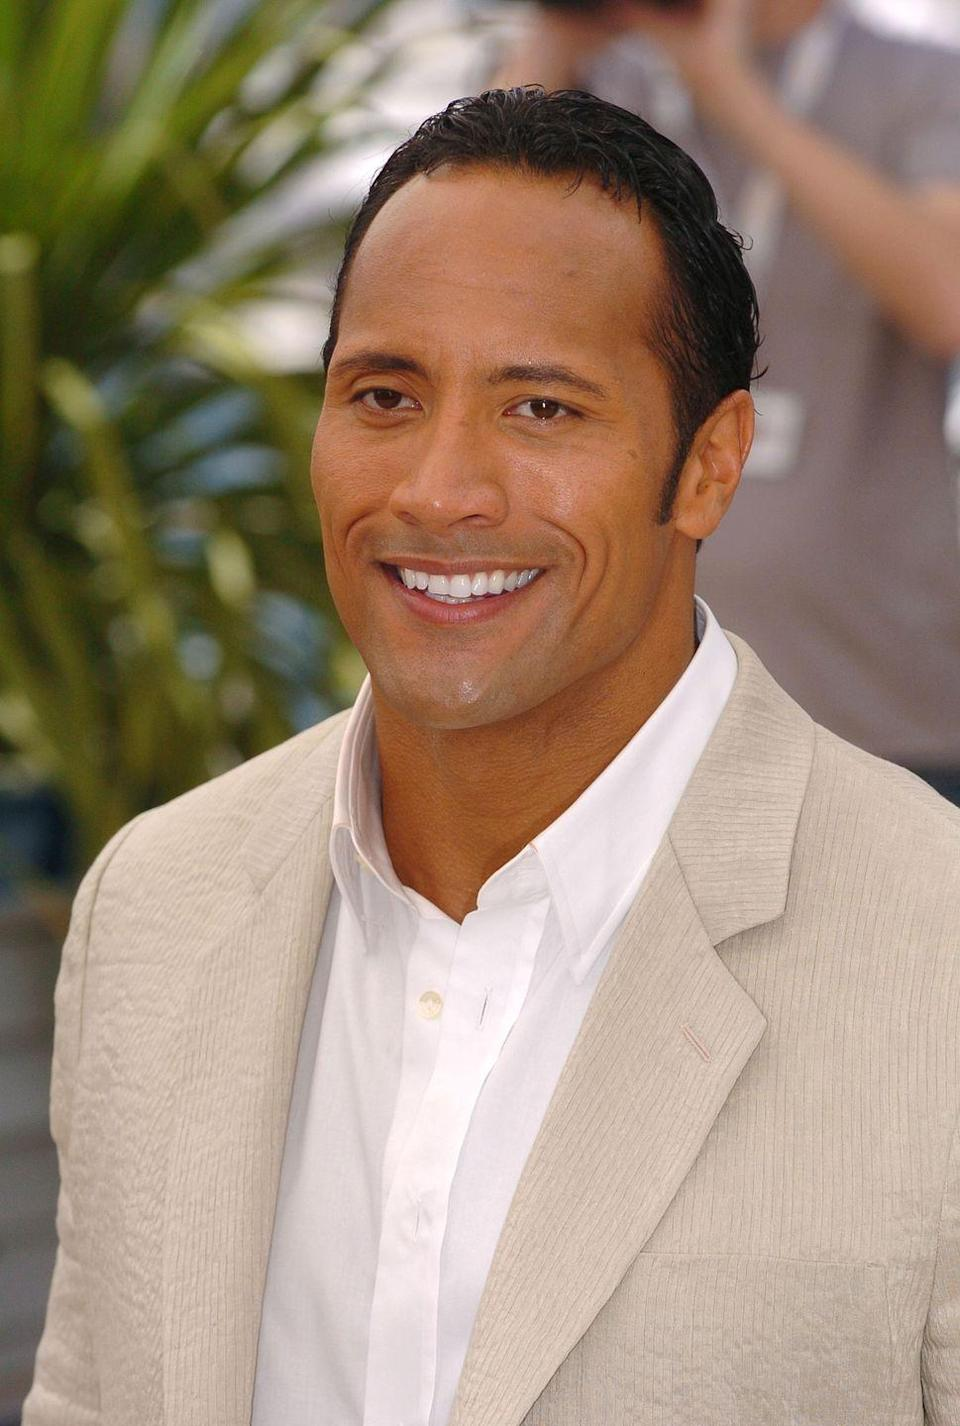 <p><strong>Hair</strong></p><p>Back in 2006, the Rock was at the beginning of his successful acting career, and actually had a full head of hair. </p>